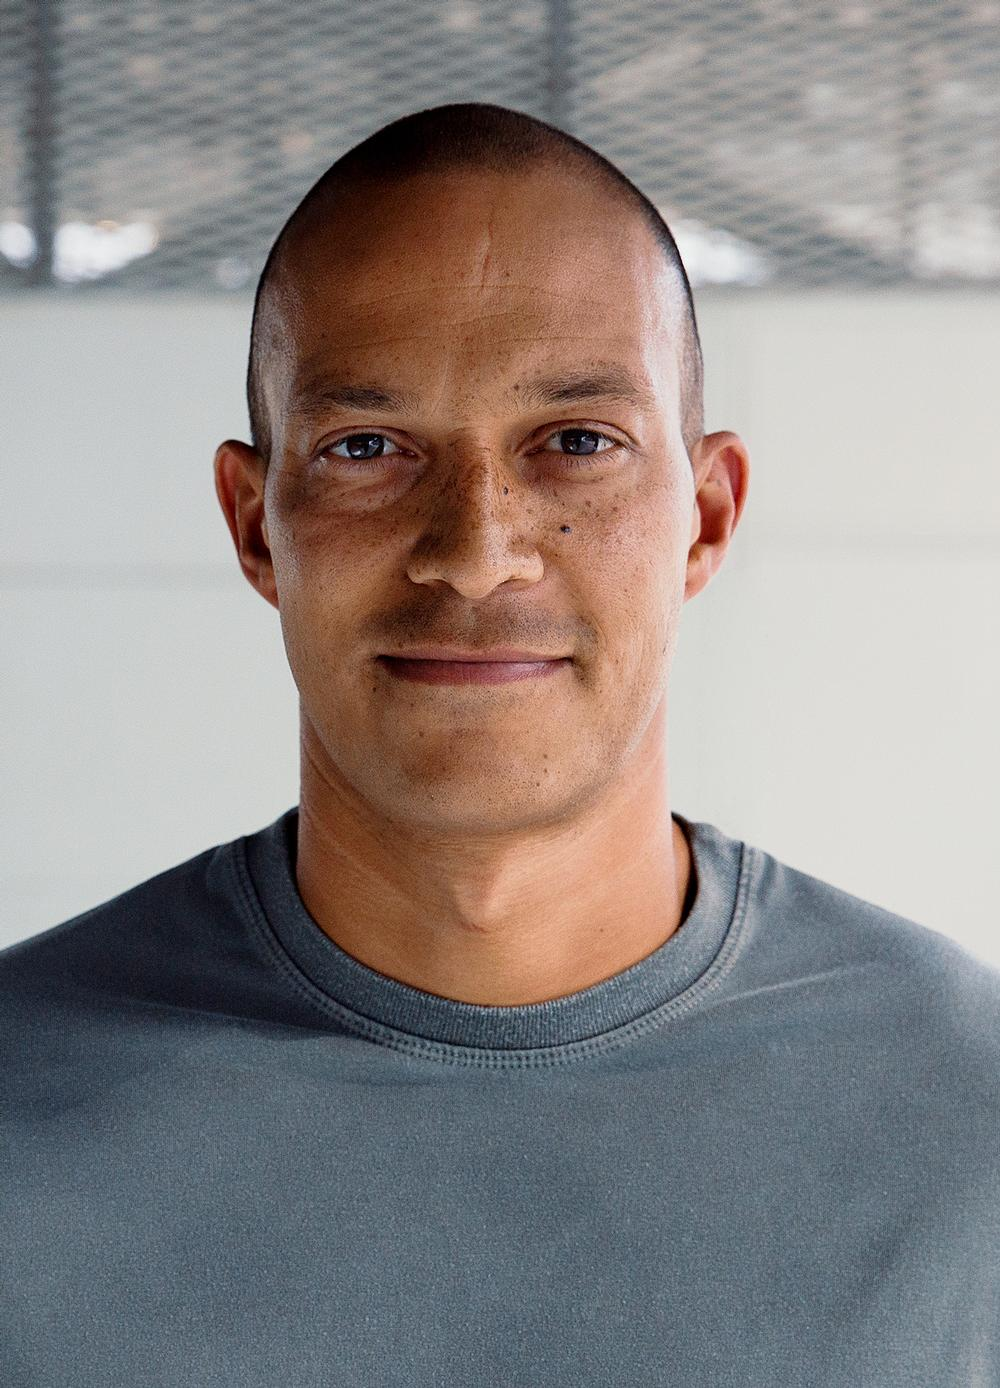 Former player Bobby Zamora says he wants to make a real difference / portraits by Jake Ratcliffe